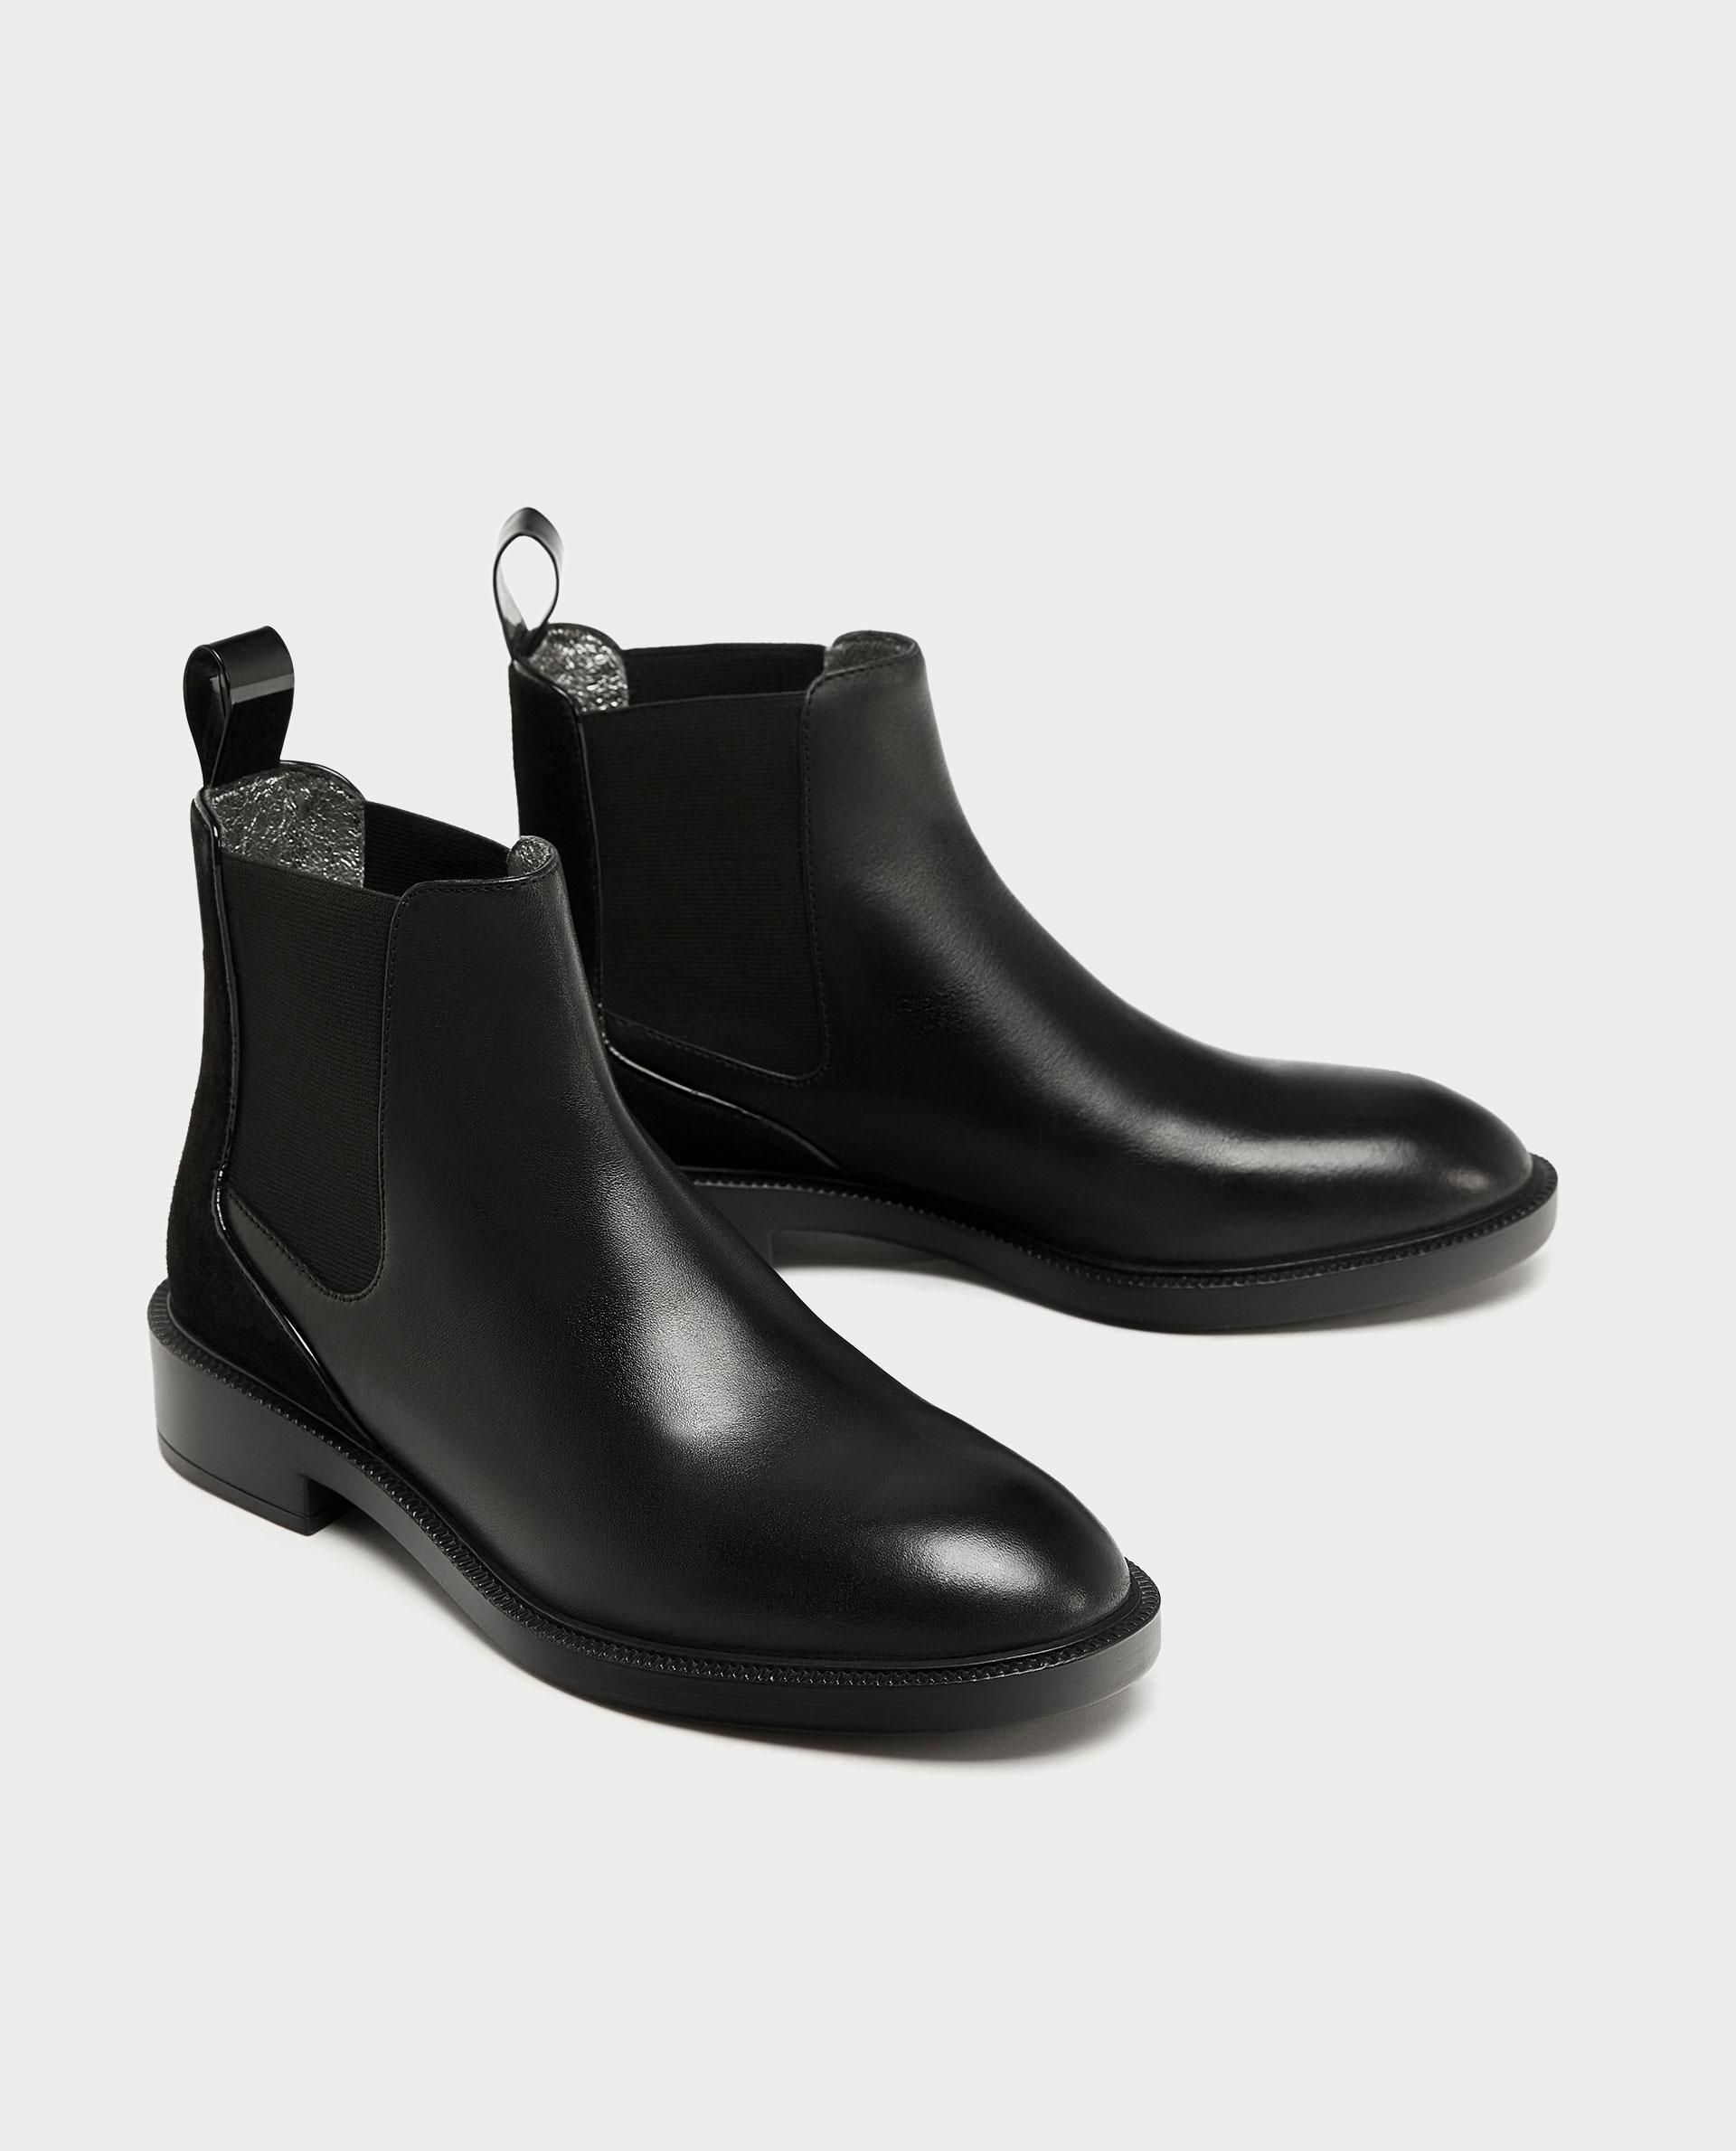 Flat Leather Chelsea Boots from zara - 69.90 USD